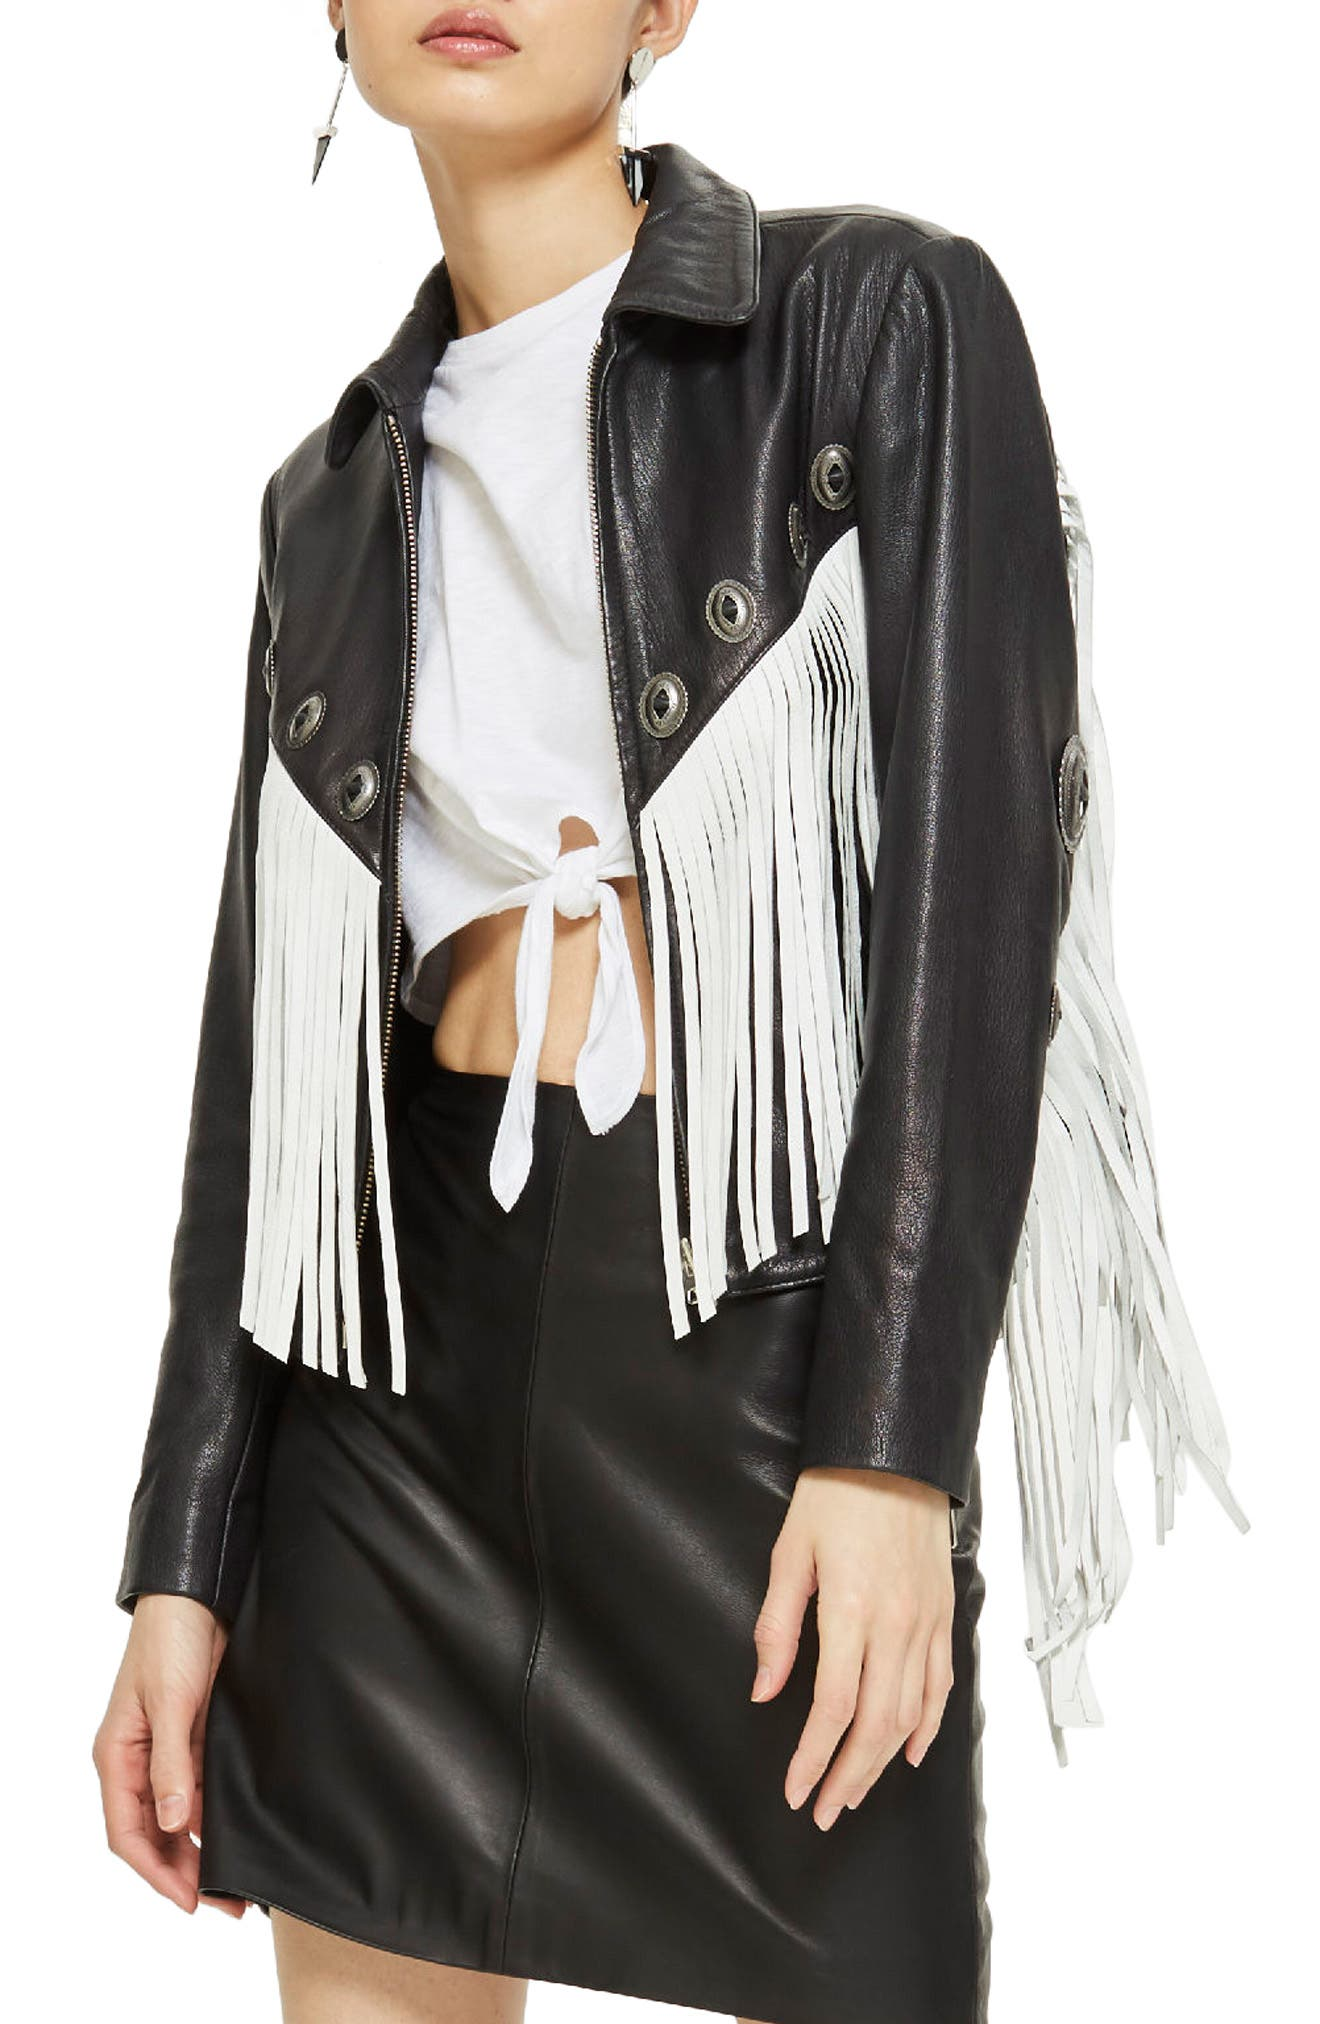 Austin Fringe Leather Biker Jacket,                             Main thumbnail 1, color,                             Black Multi